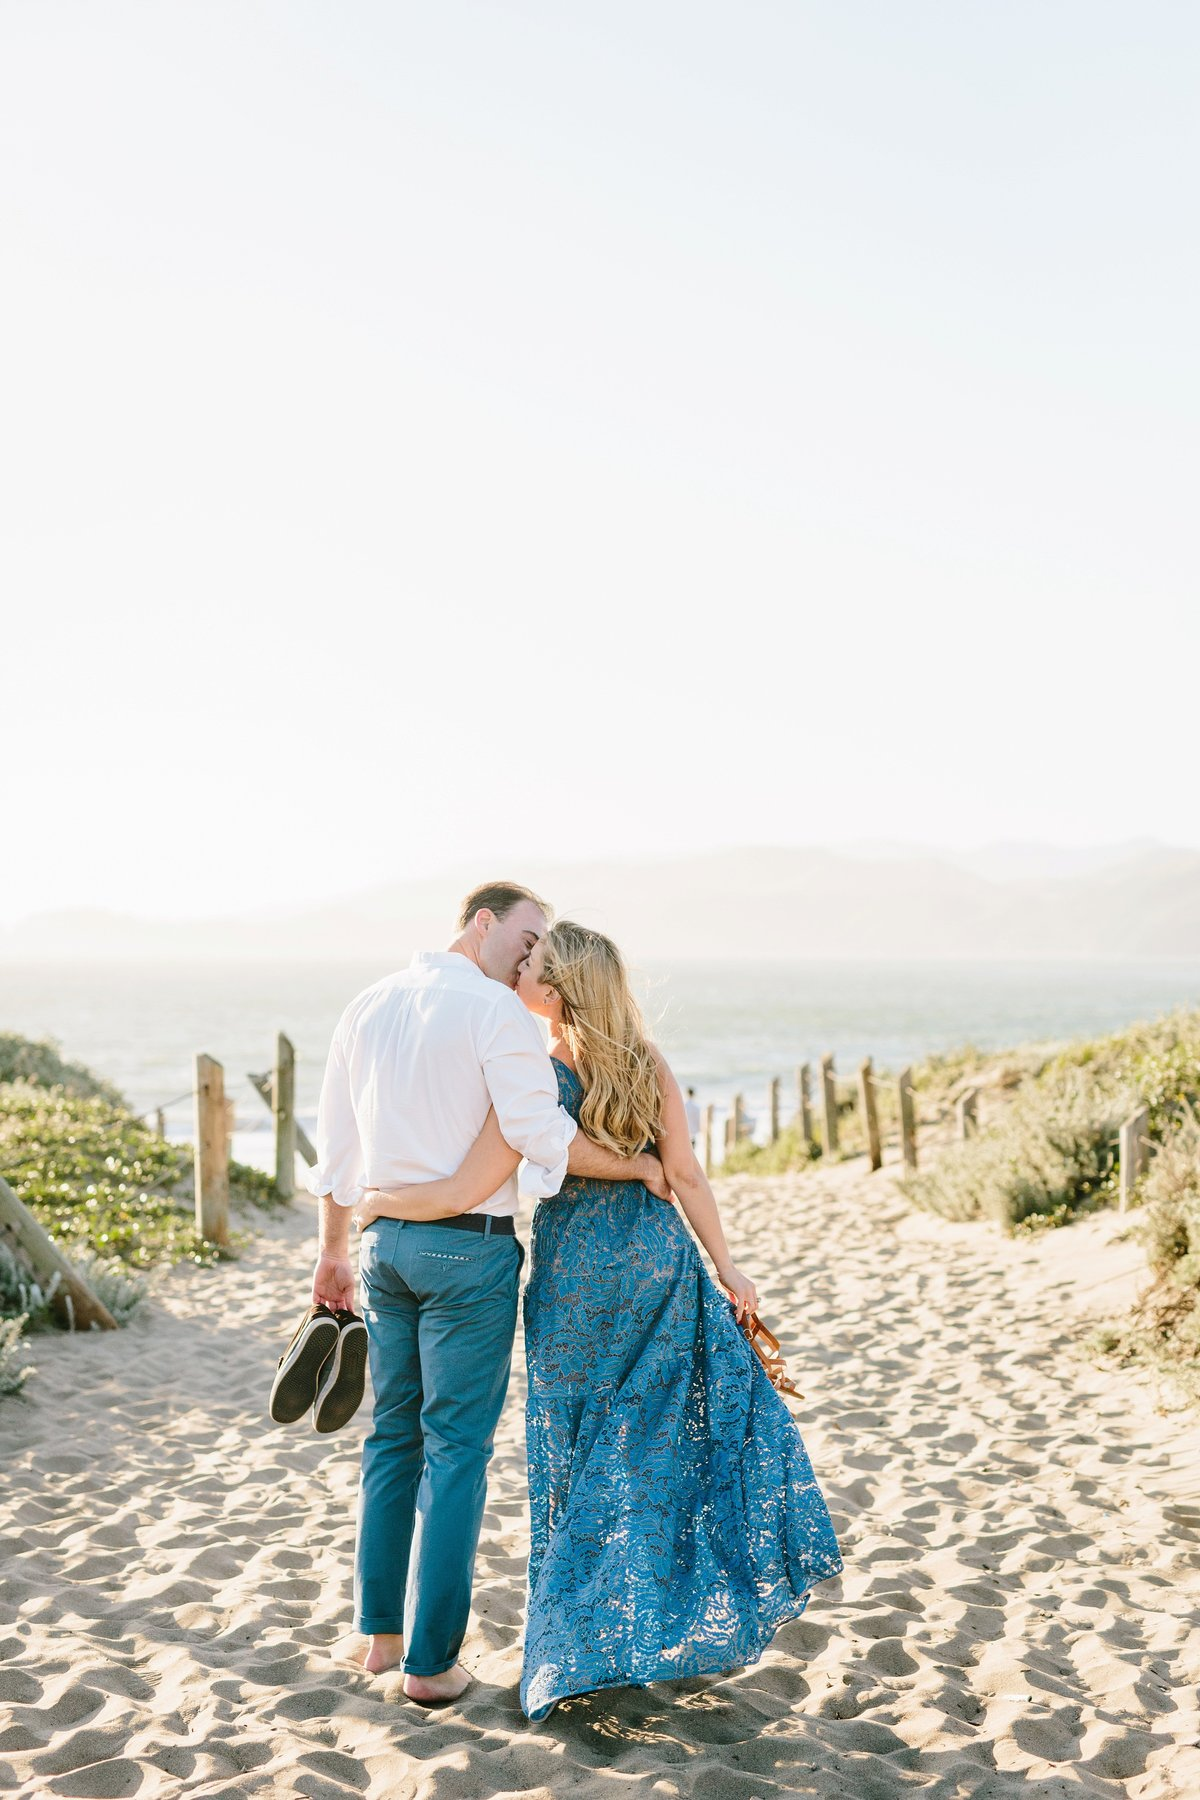 Best California Engagement Photographer_Jodee Debes Photography_041